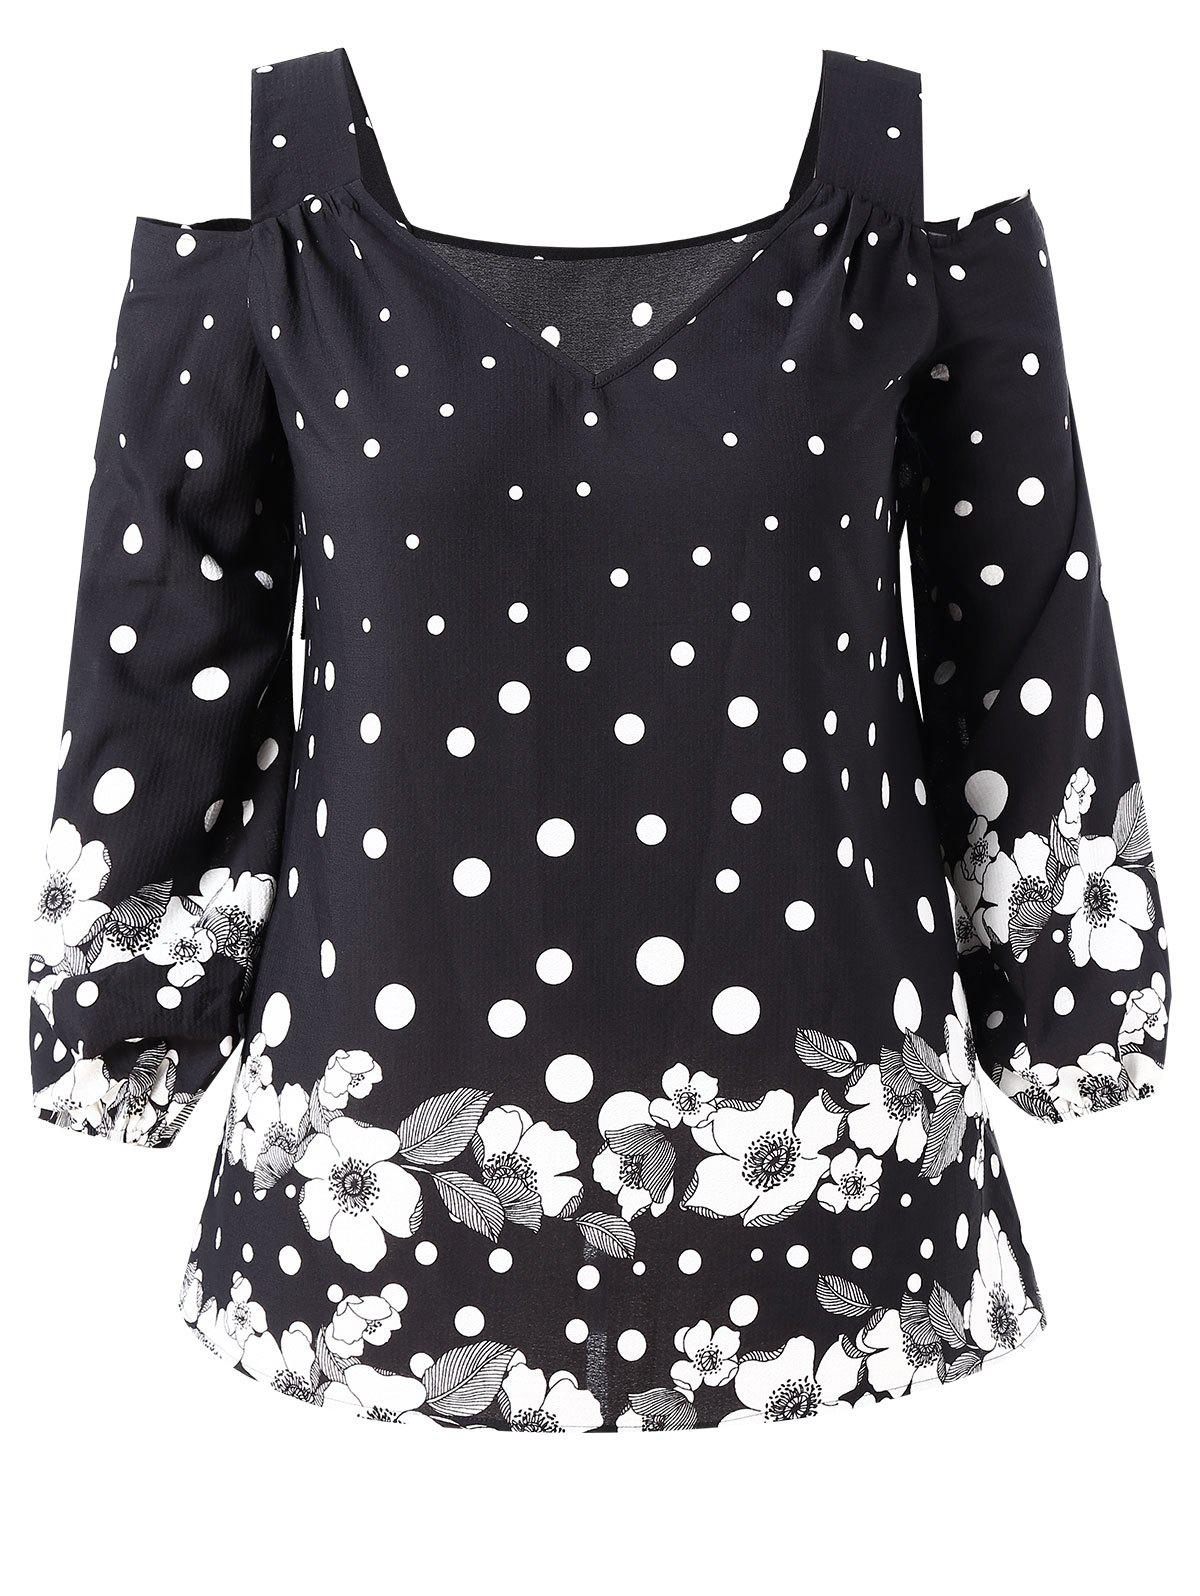 Trendy Plus Size Cold Shoulder Polka Dot Floral Print Cuff Sleeve T-shirt